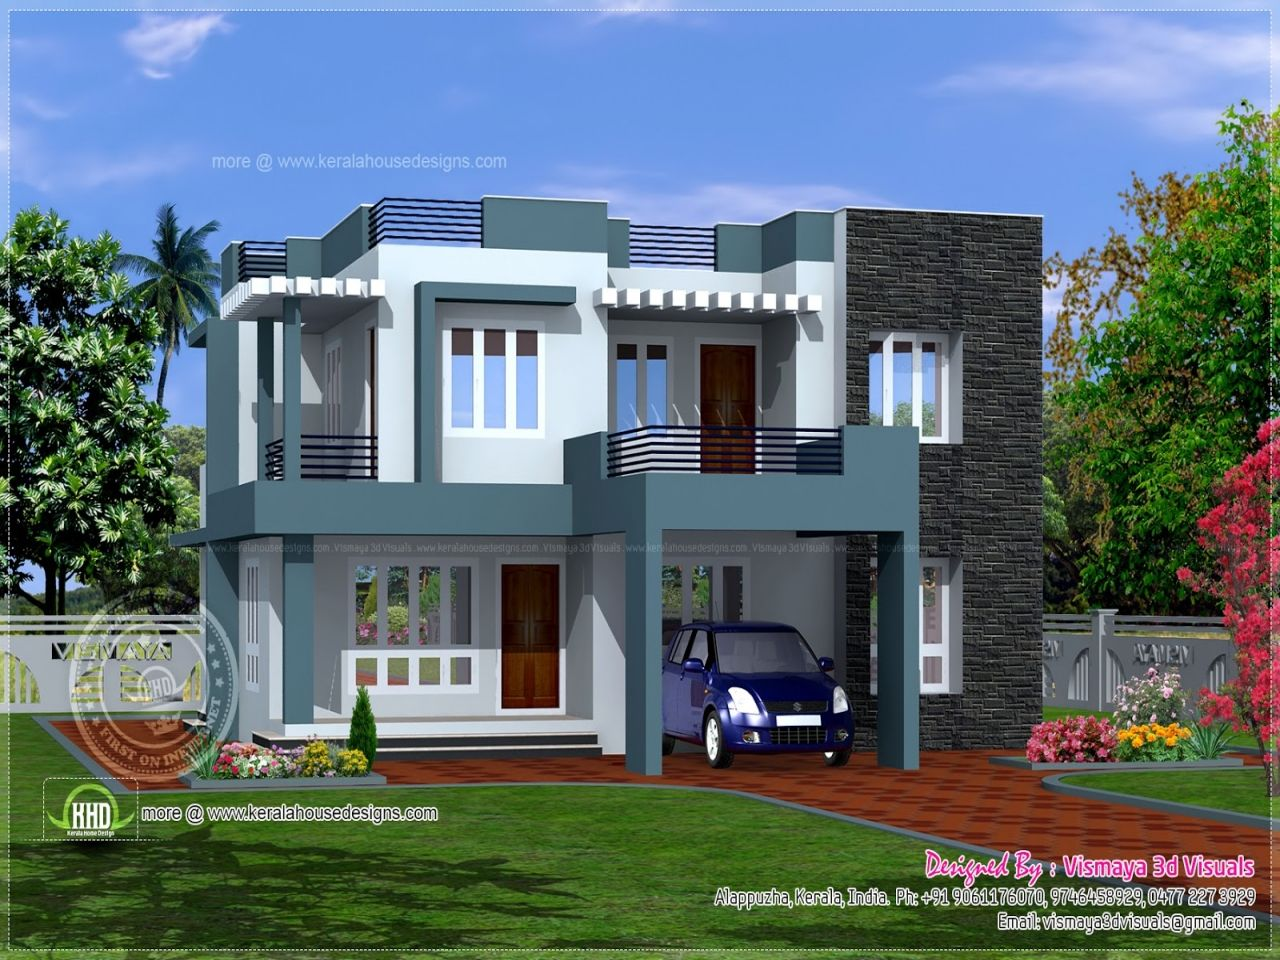 BHK modern flat roof house design - Kerala home design and floor plans |  Great modern homes | Pinterest | Flat roof house designs